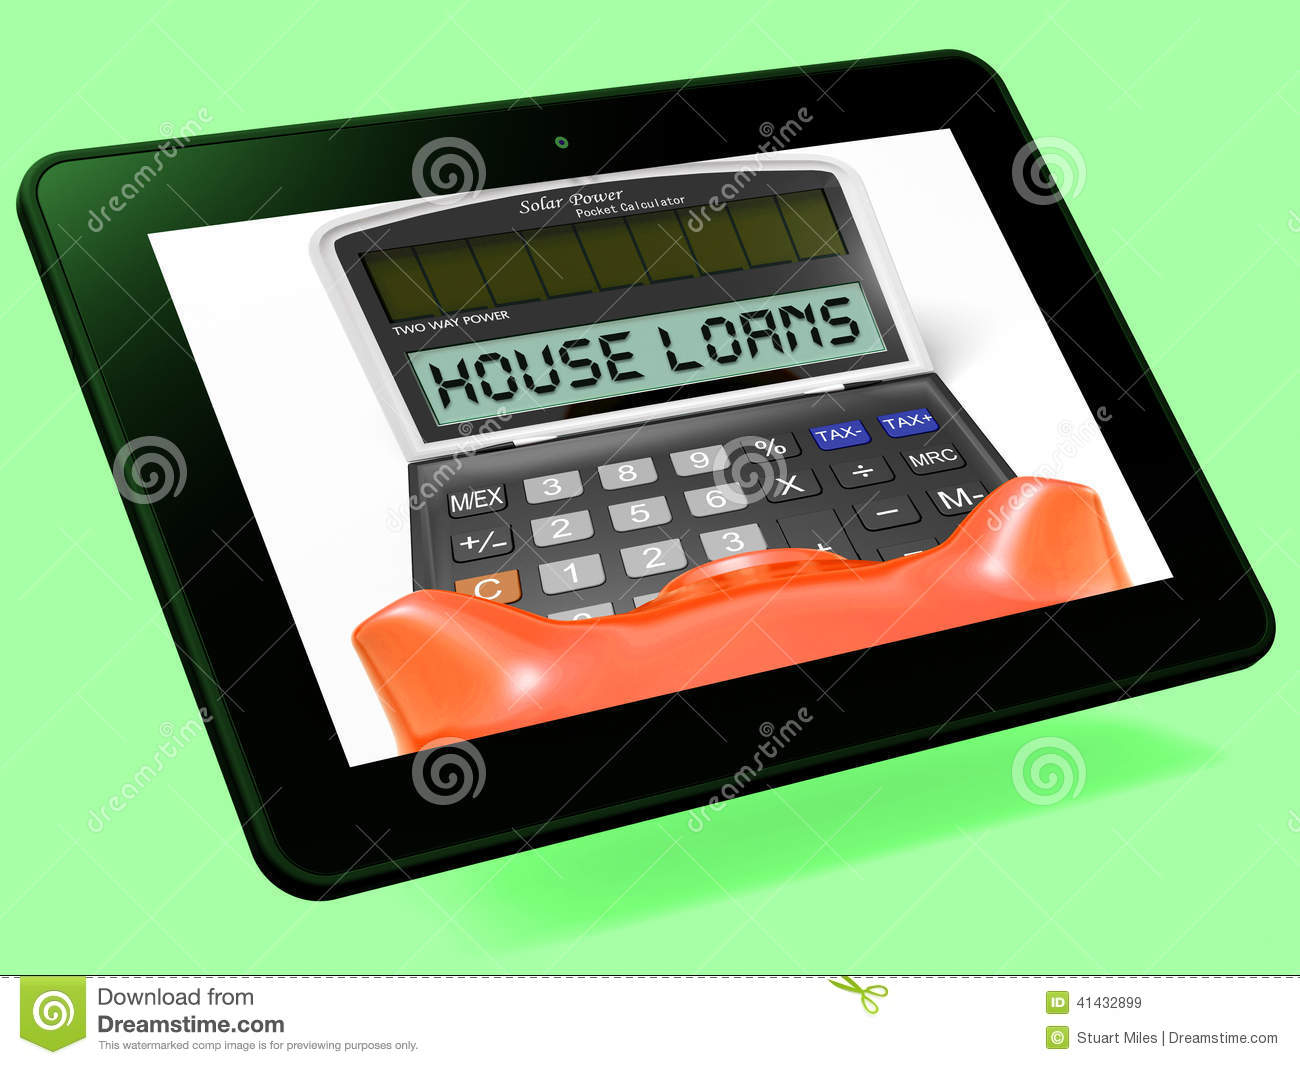 House loans calculator tablet shows mortgage and bank for Building a home calculator